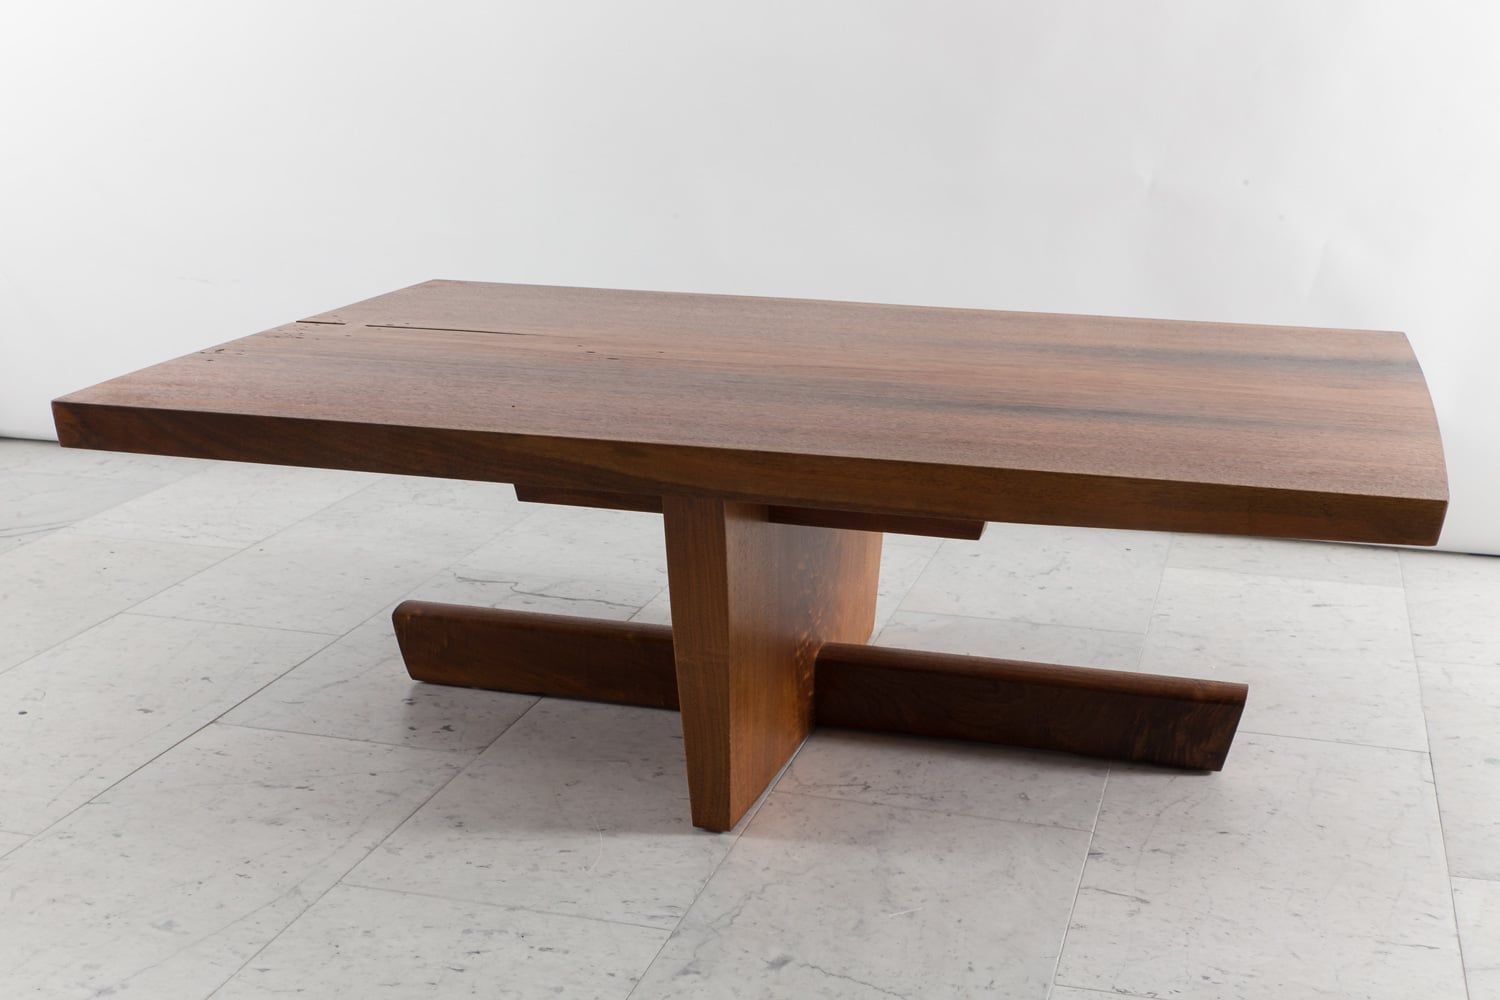 George nakashima large minguren low table usa 1974 for Large low coffee table